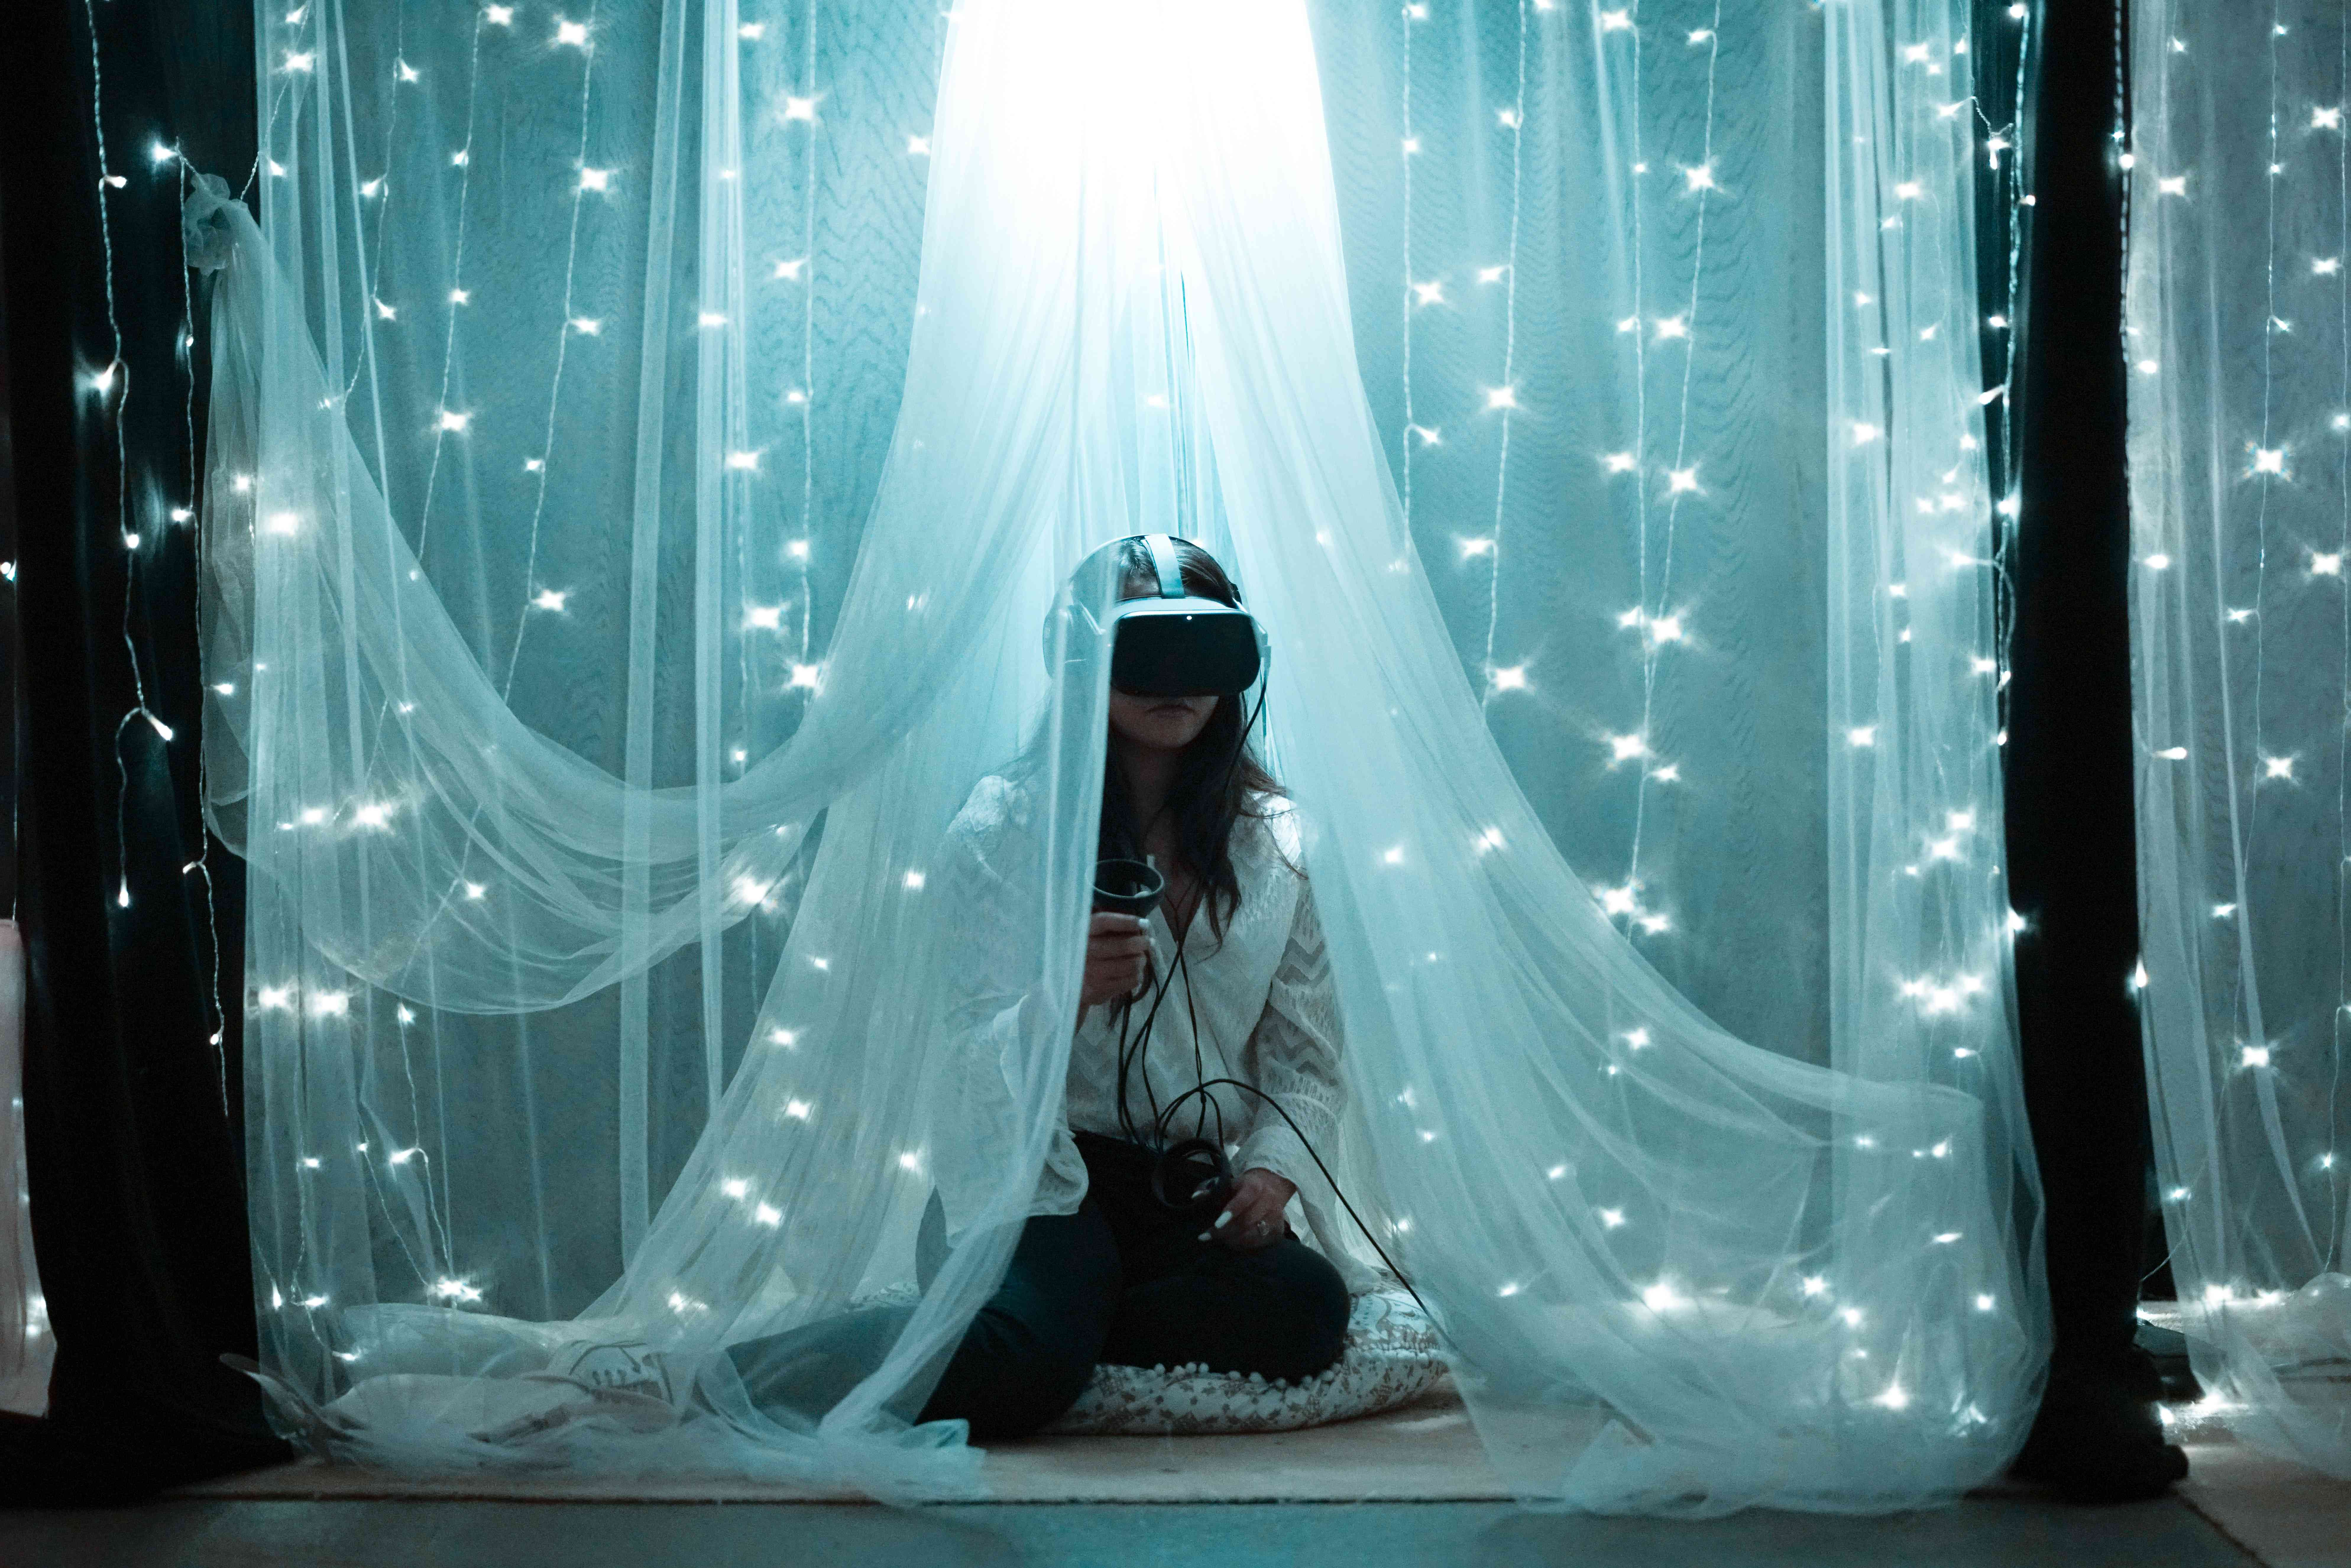 Someone sitting under a curtain of lights using a VR headset and controls.